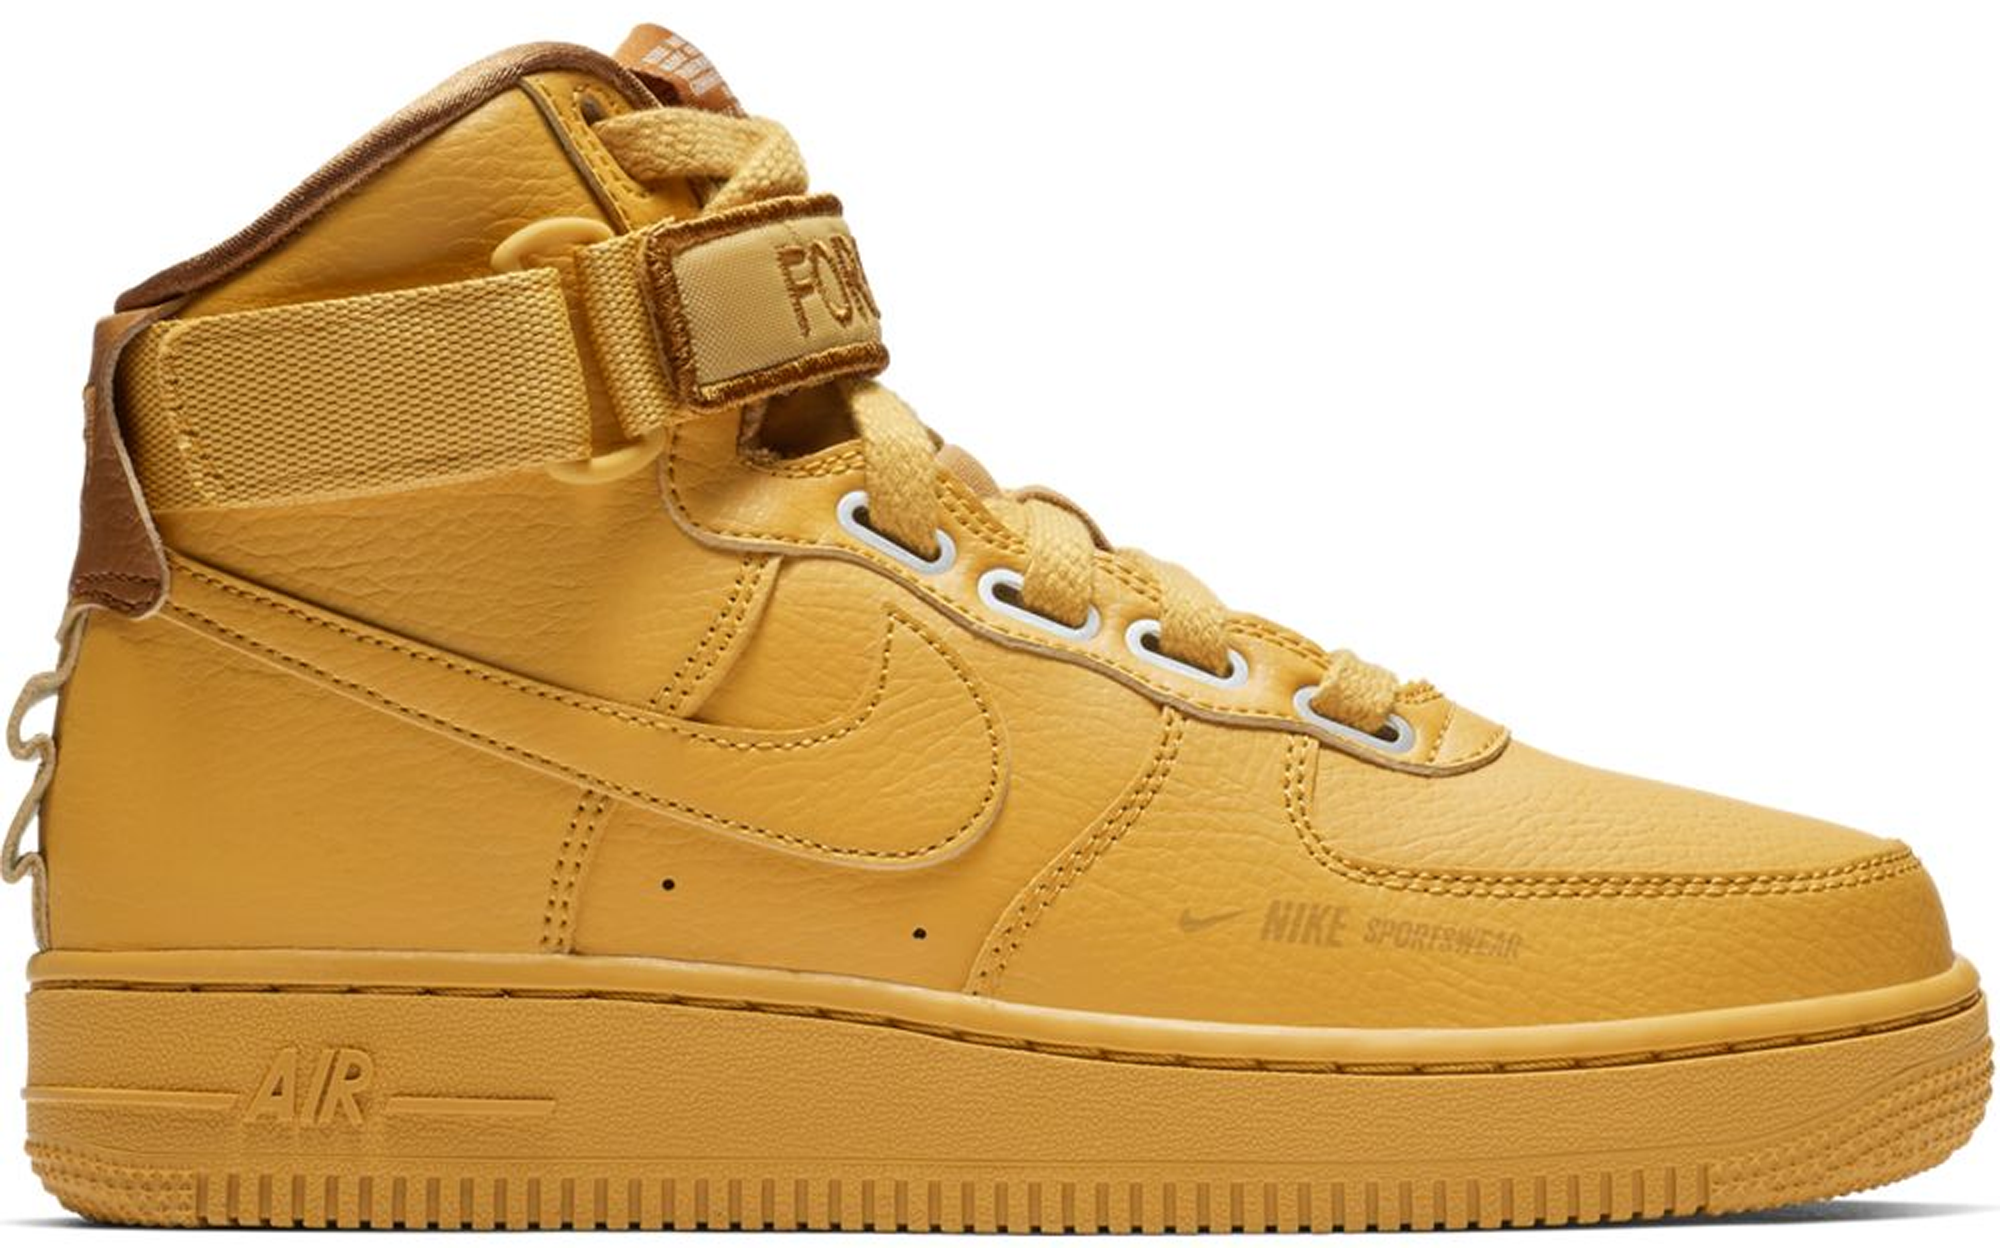 air force 1 high top yellow